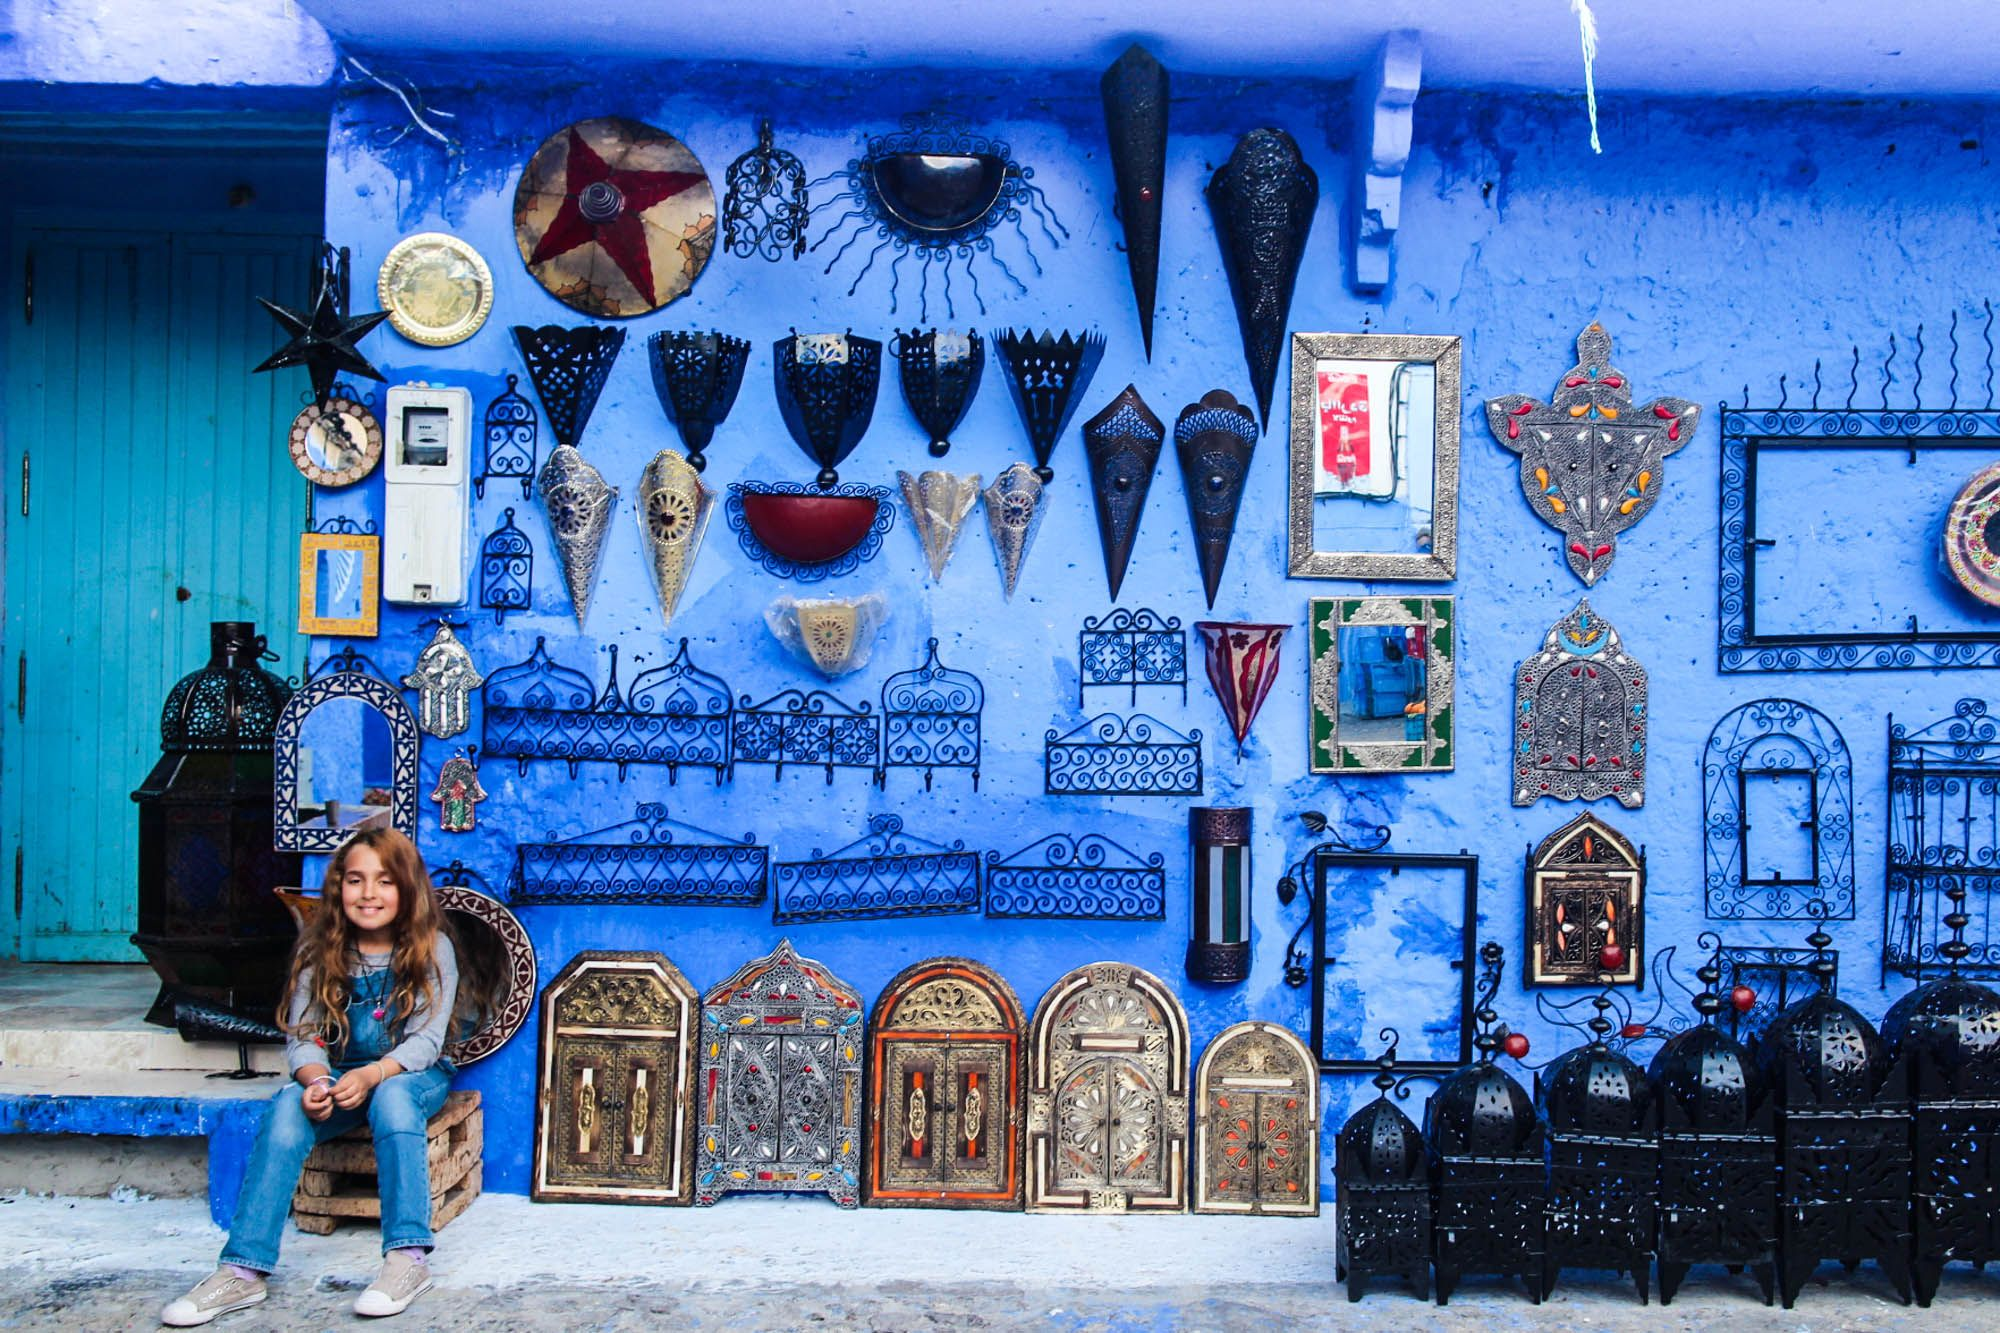 With it's gorgeous mountain backdrop, blue washed walls and laid back vibe, Chefchaouen will be quick to steal your unassuming little heart.